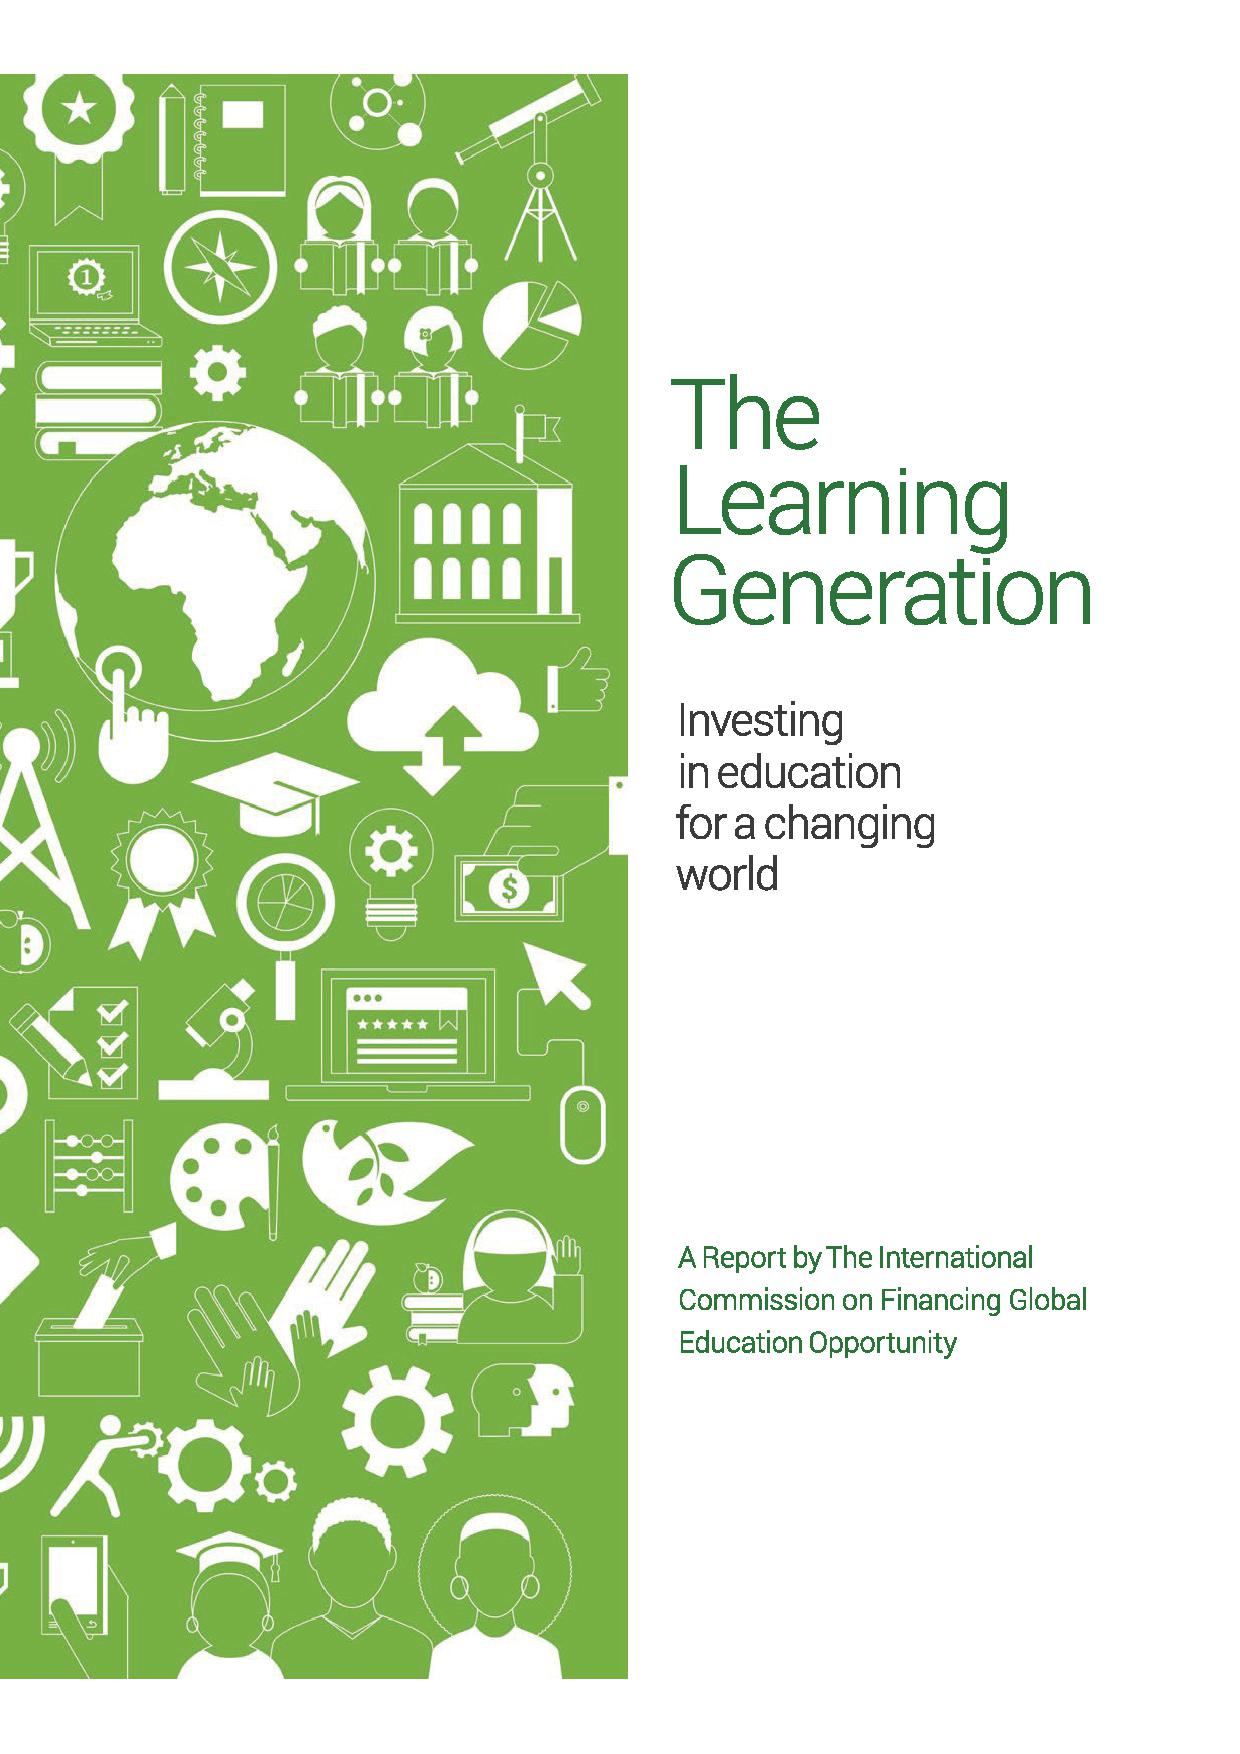 Education Commission 2017 | The Learning Generation